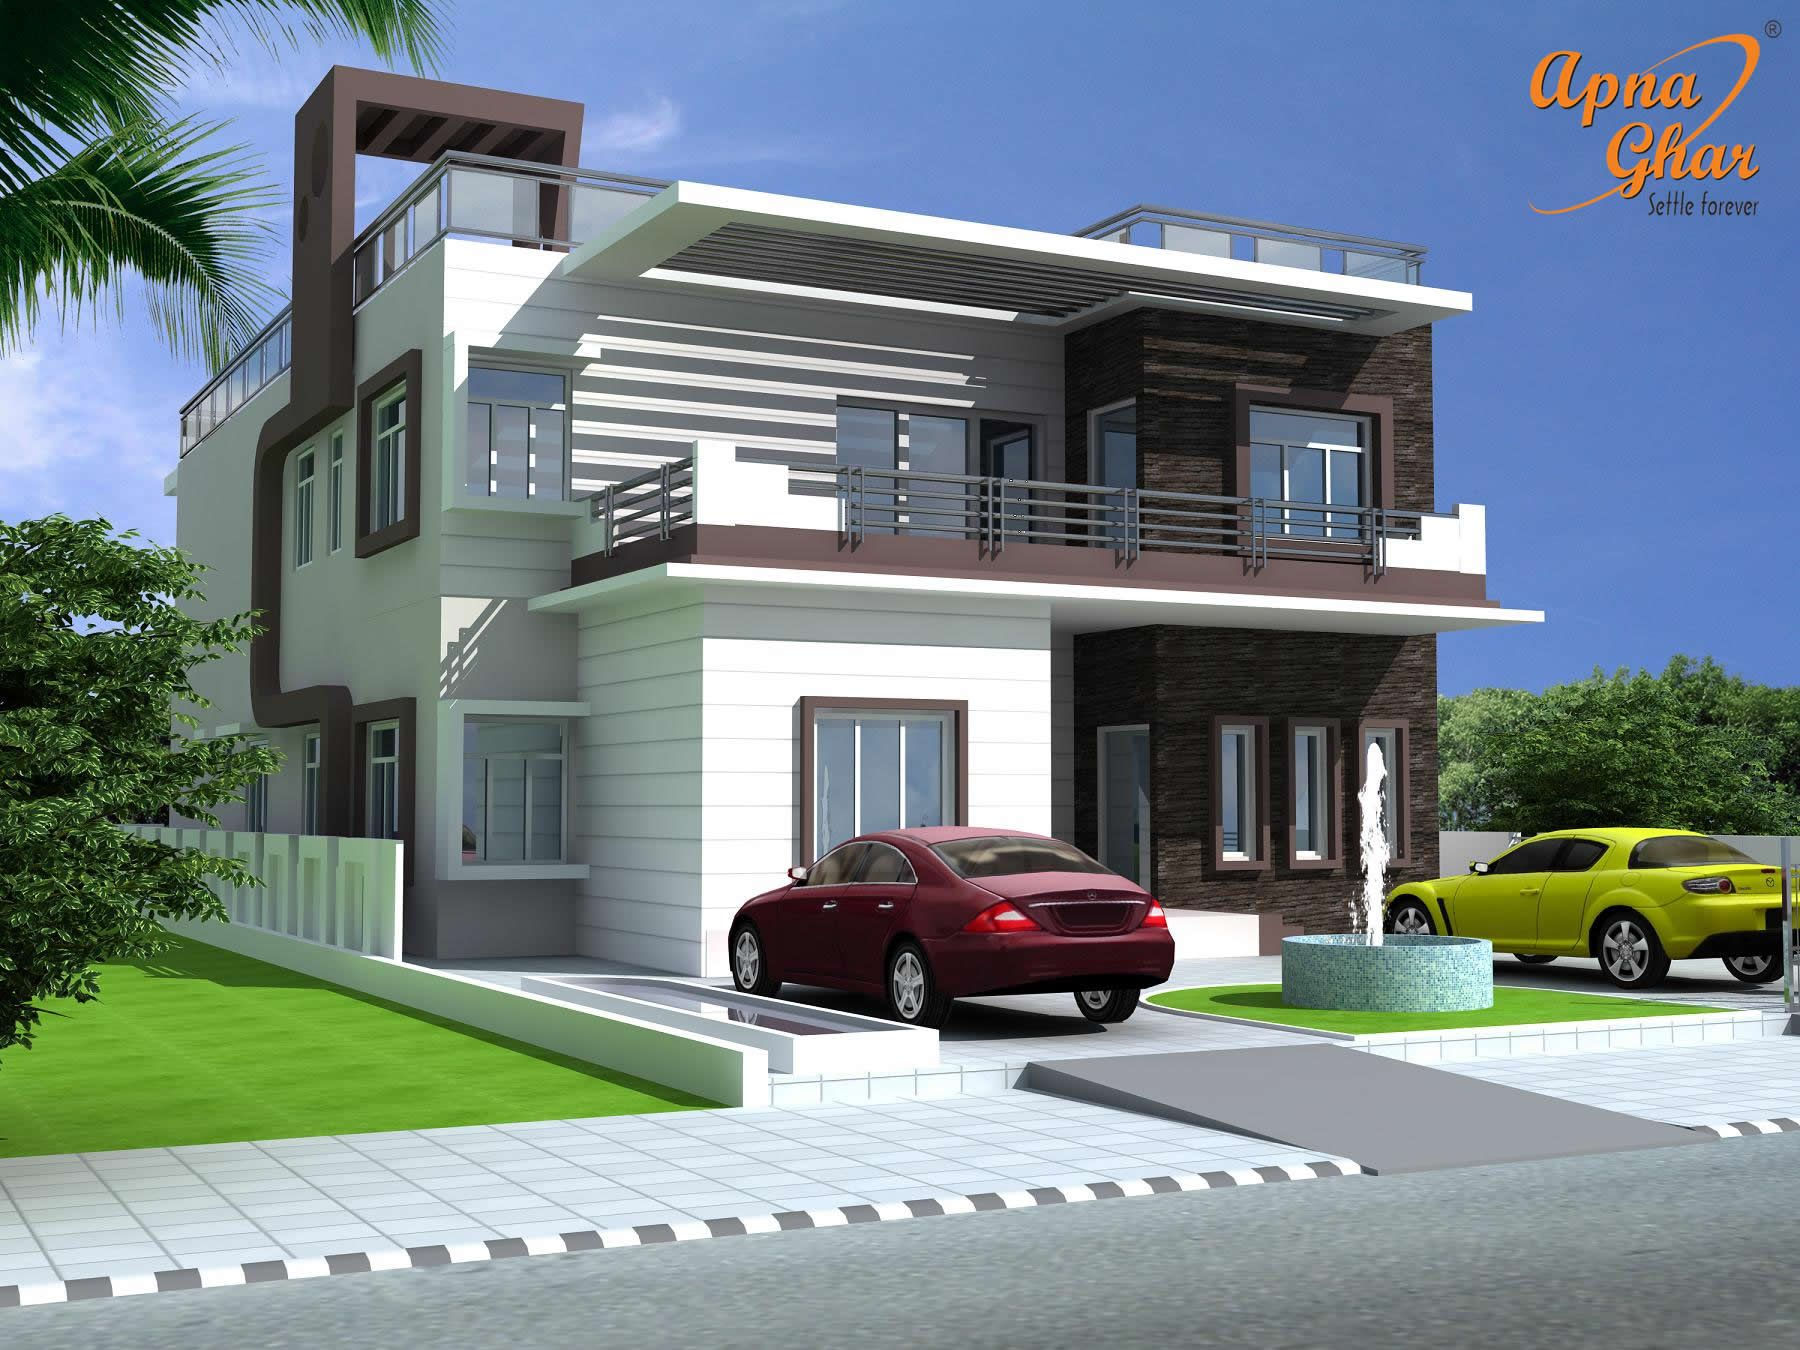 6 bedrooms duplex house design in 390m2 13m x 30m click for Building plans for duplex homes